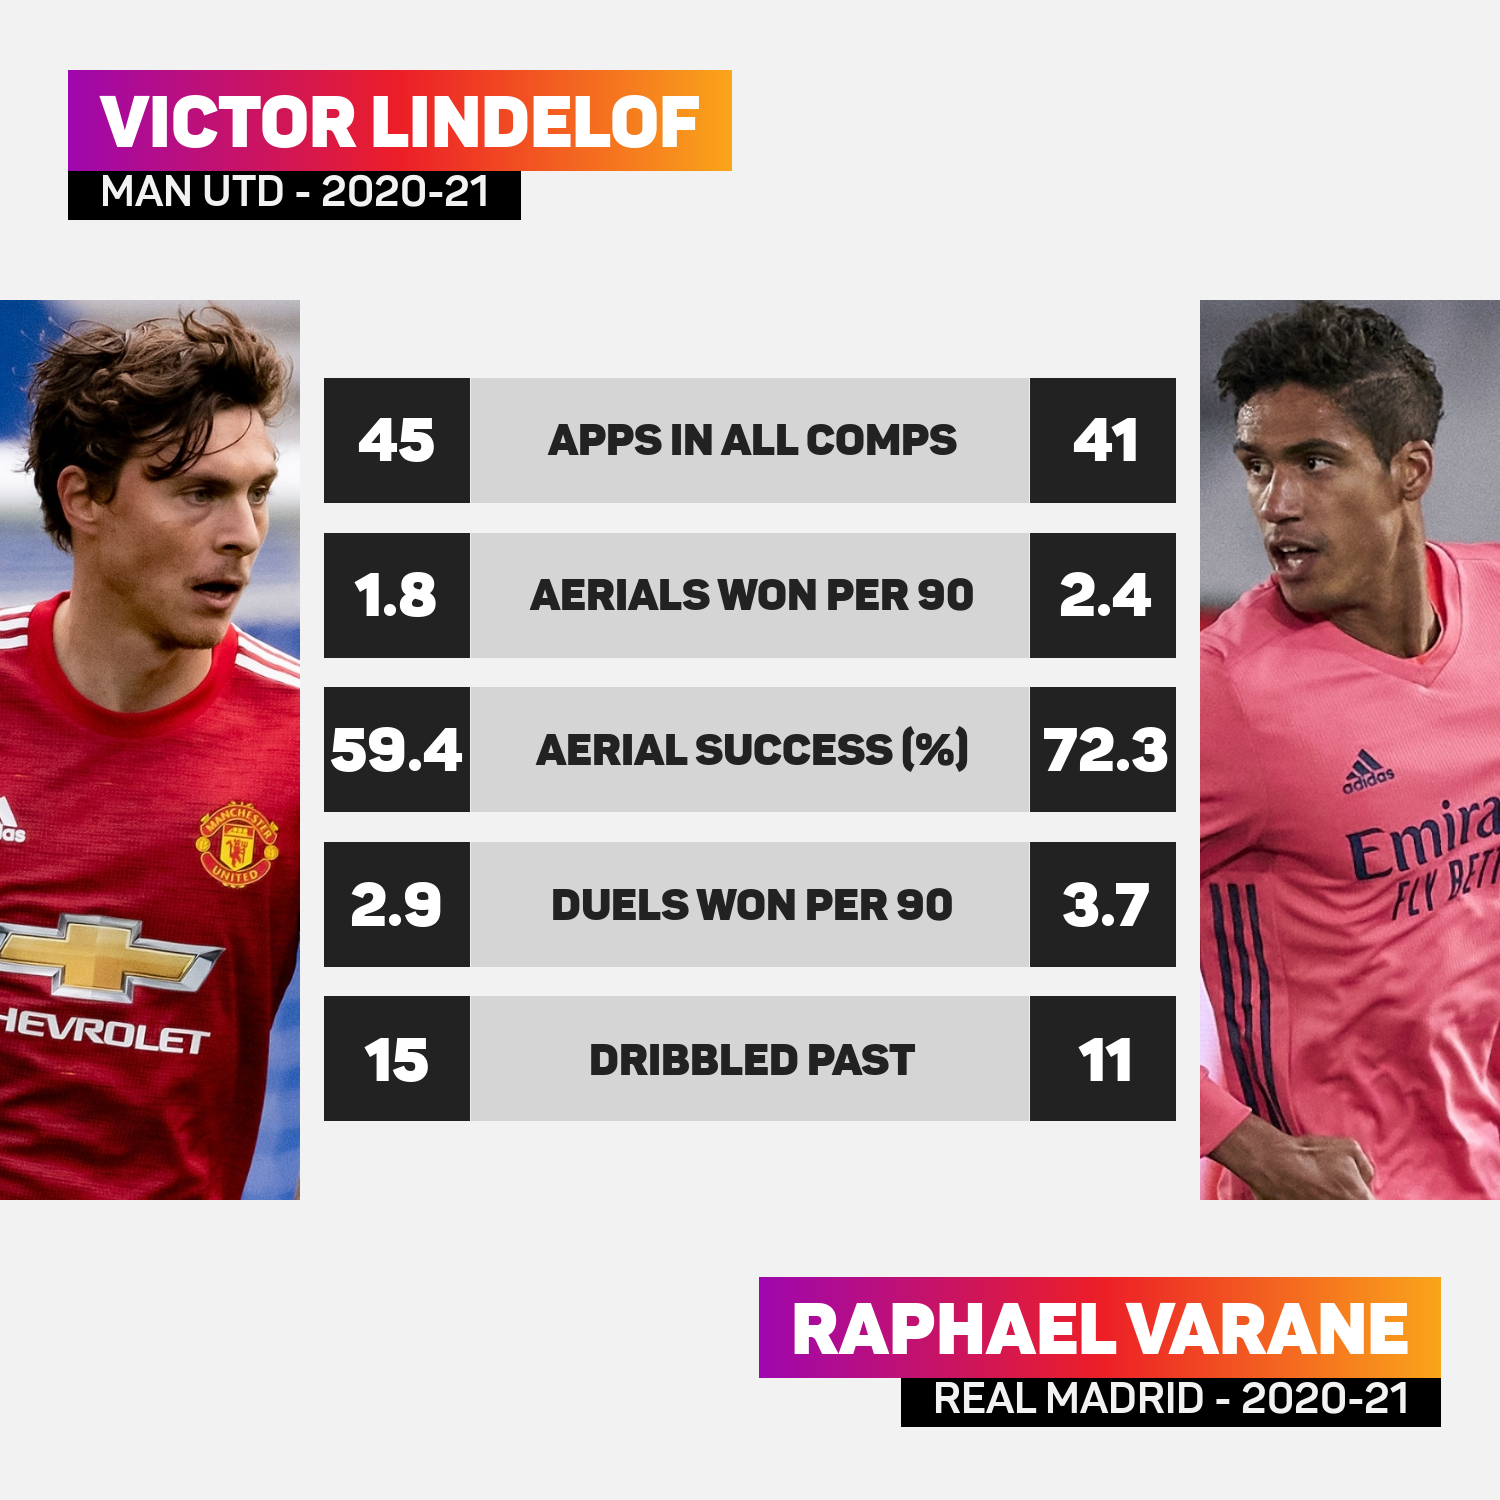 Raphael Varane would offer greater physicality than Lindelof